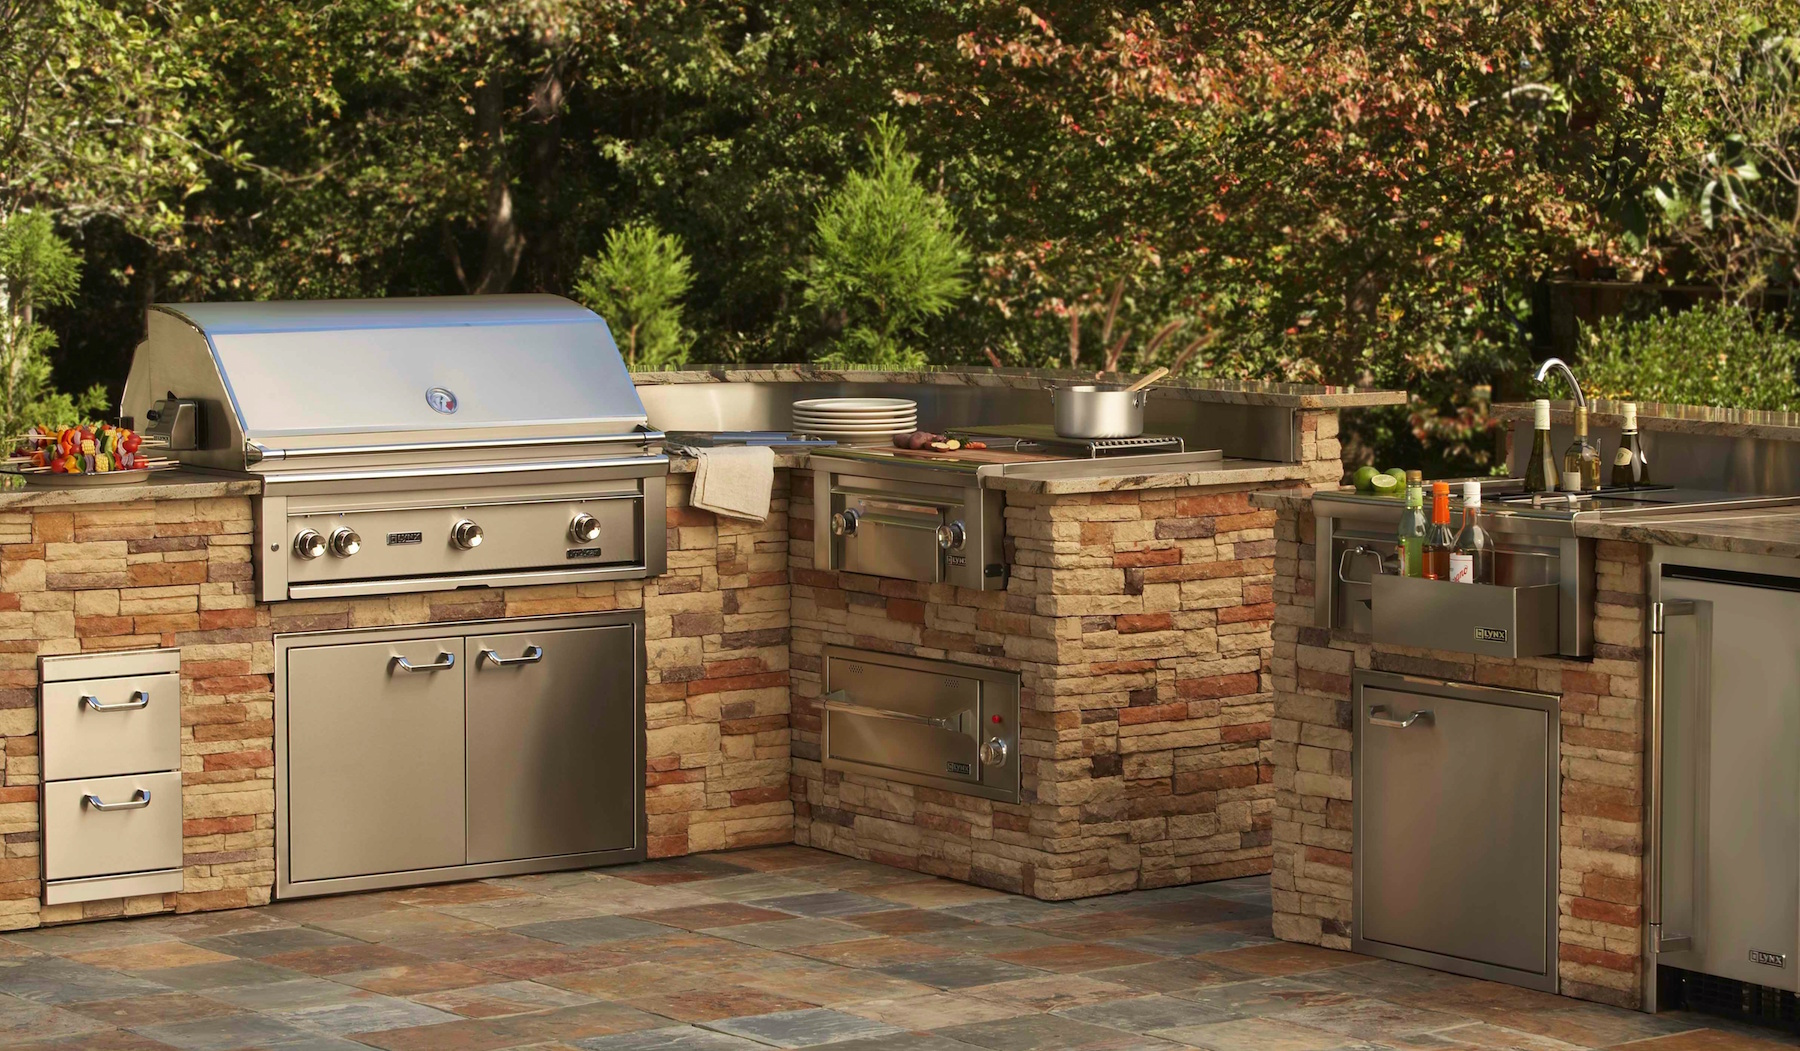 Choosing a professional barbecue grill for your outdoor for Outdoor kitchen barbecue grills